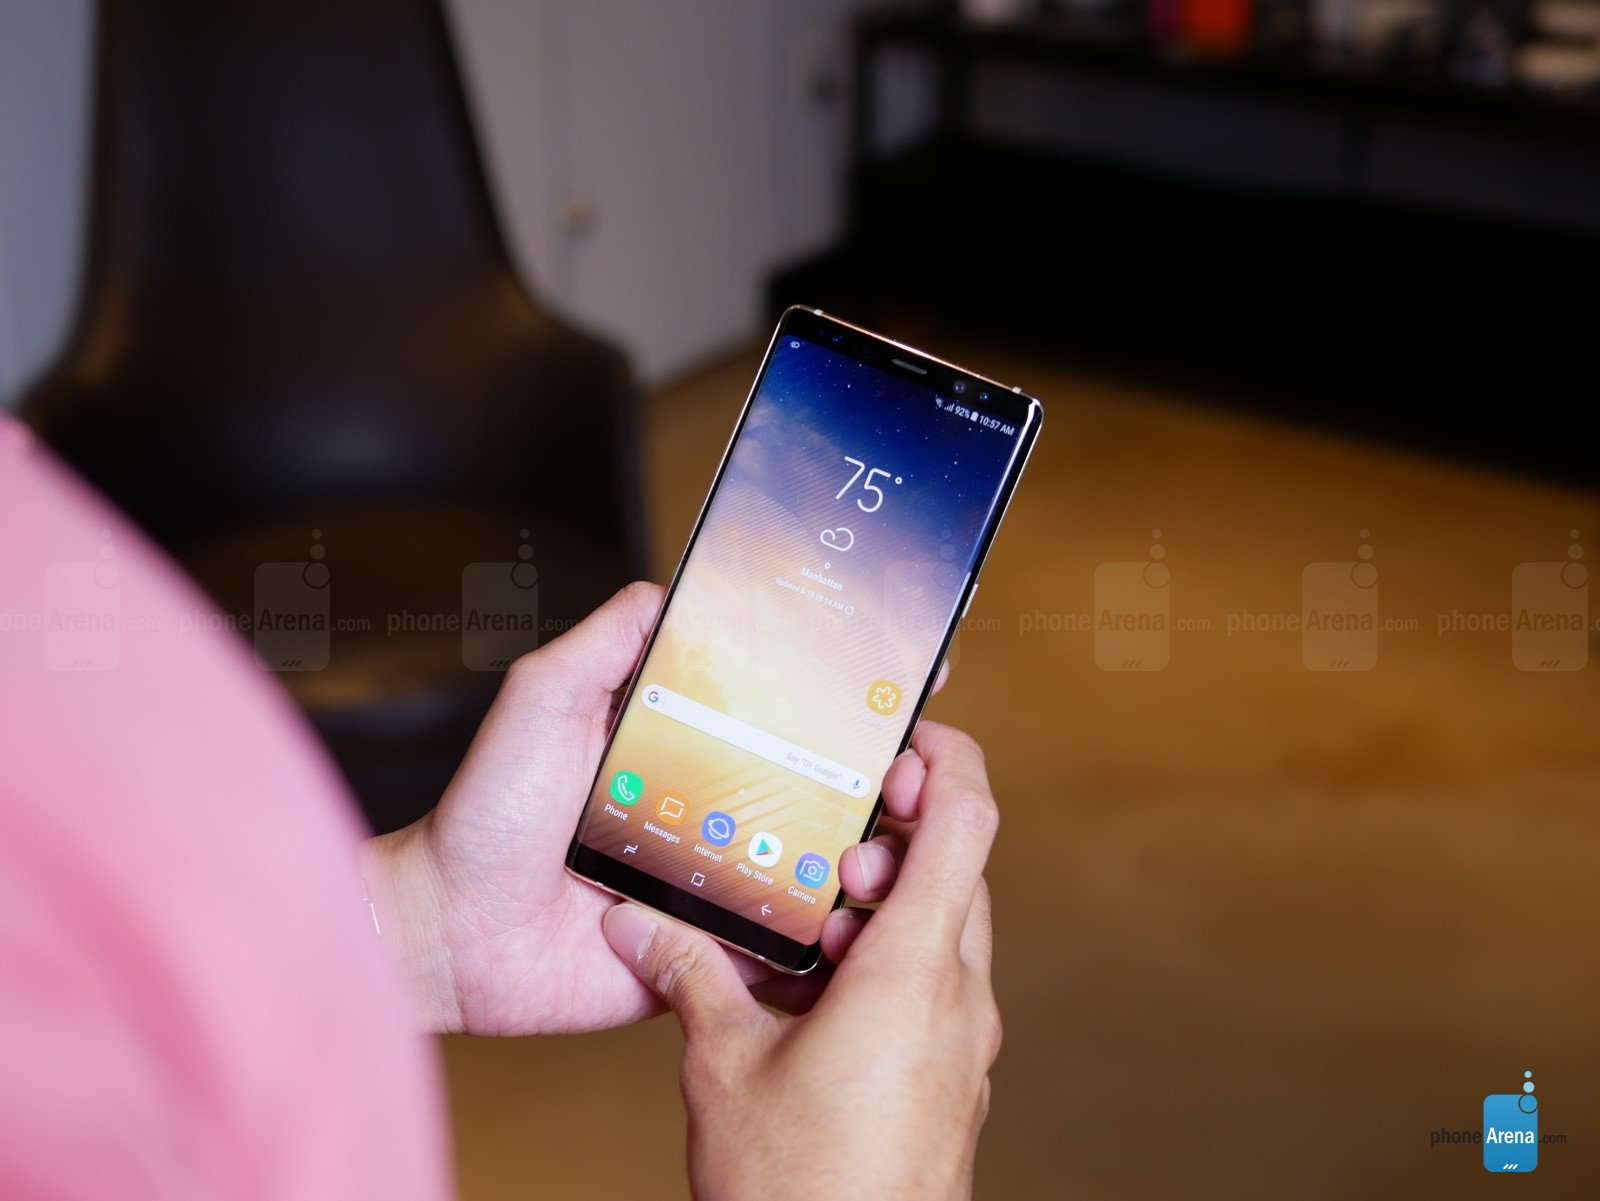 https://i-cdn.phonearena.com/images/articles/298391-image/Galaxy-Note-8-hands-on-specs-price-release-02.jpg